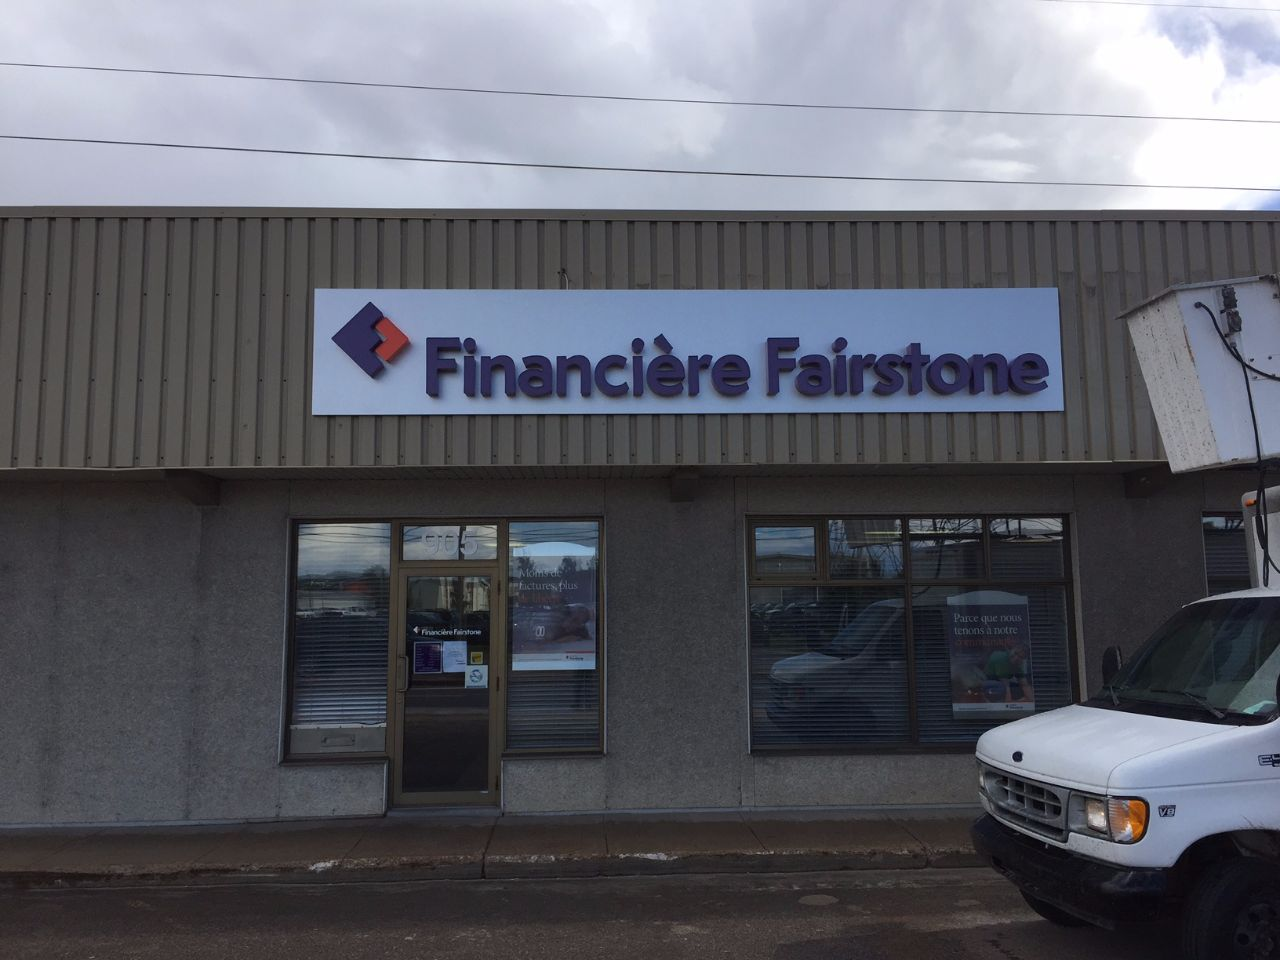 Fairstone, formerly CitiFinancial® à Baie-Comeau